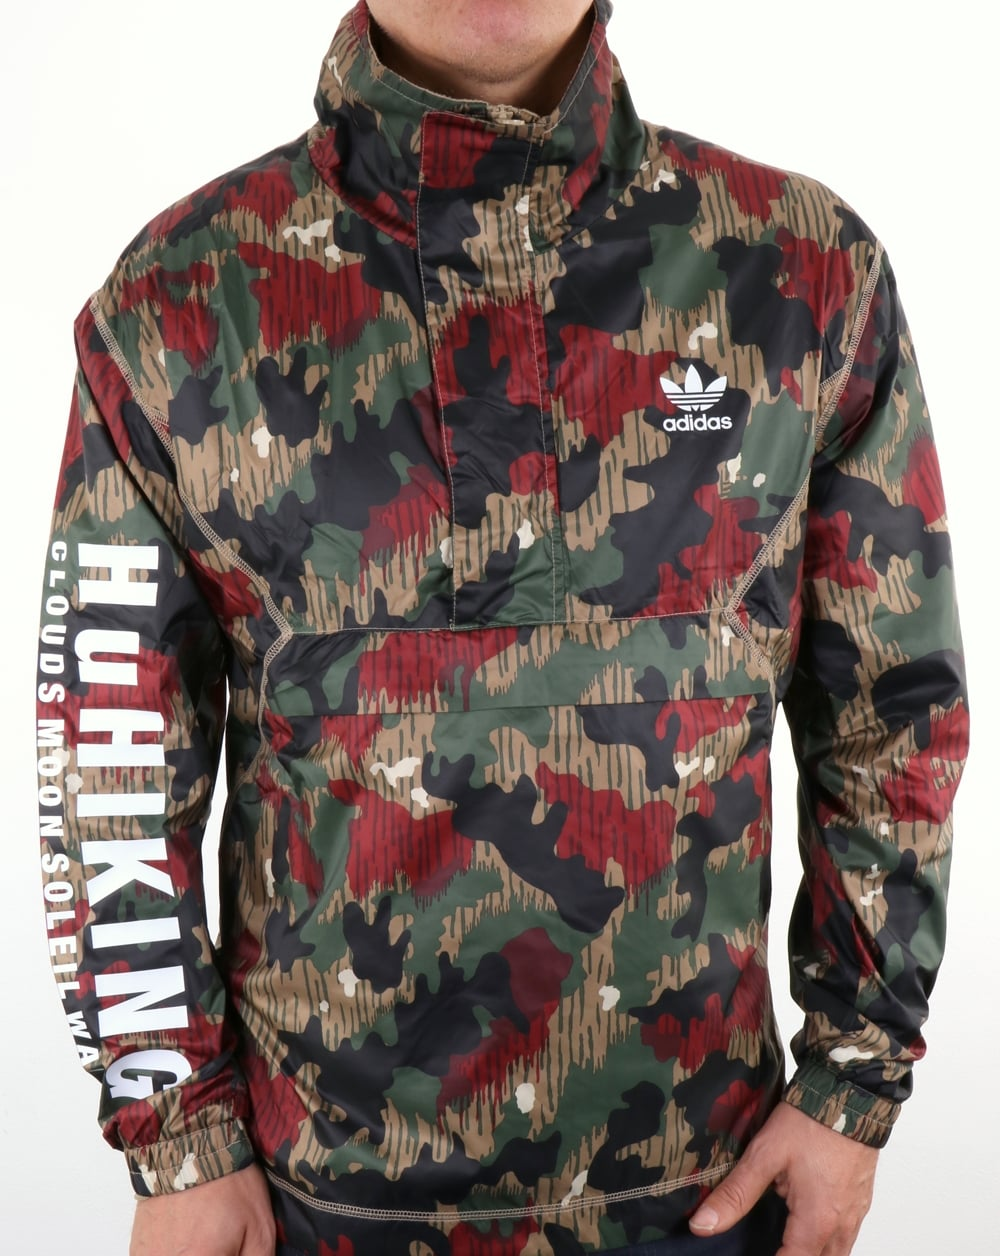 de8f6937a27a adidas Originals Adidas Originals Pharrell Williams HU Hiking Half Zip Camo  Windbreaker